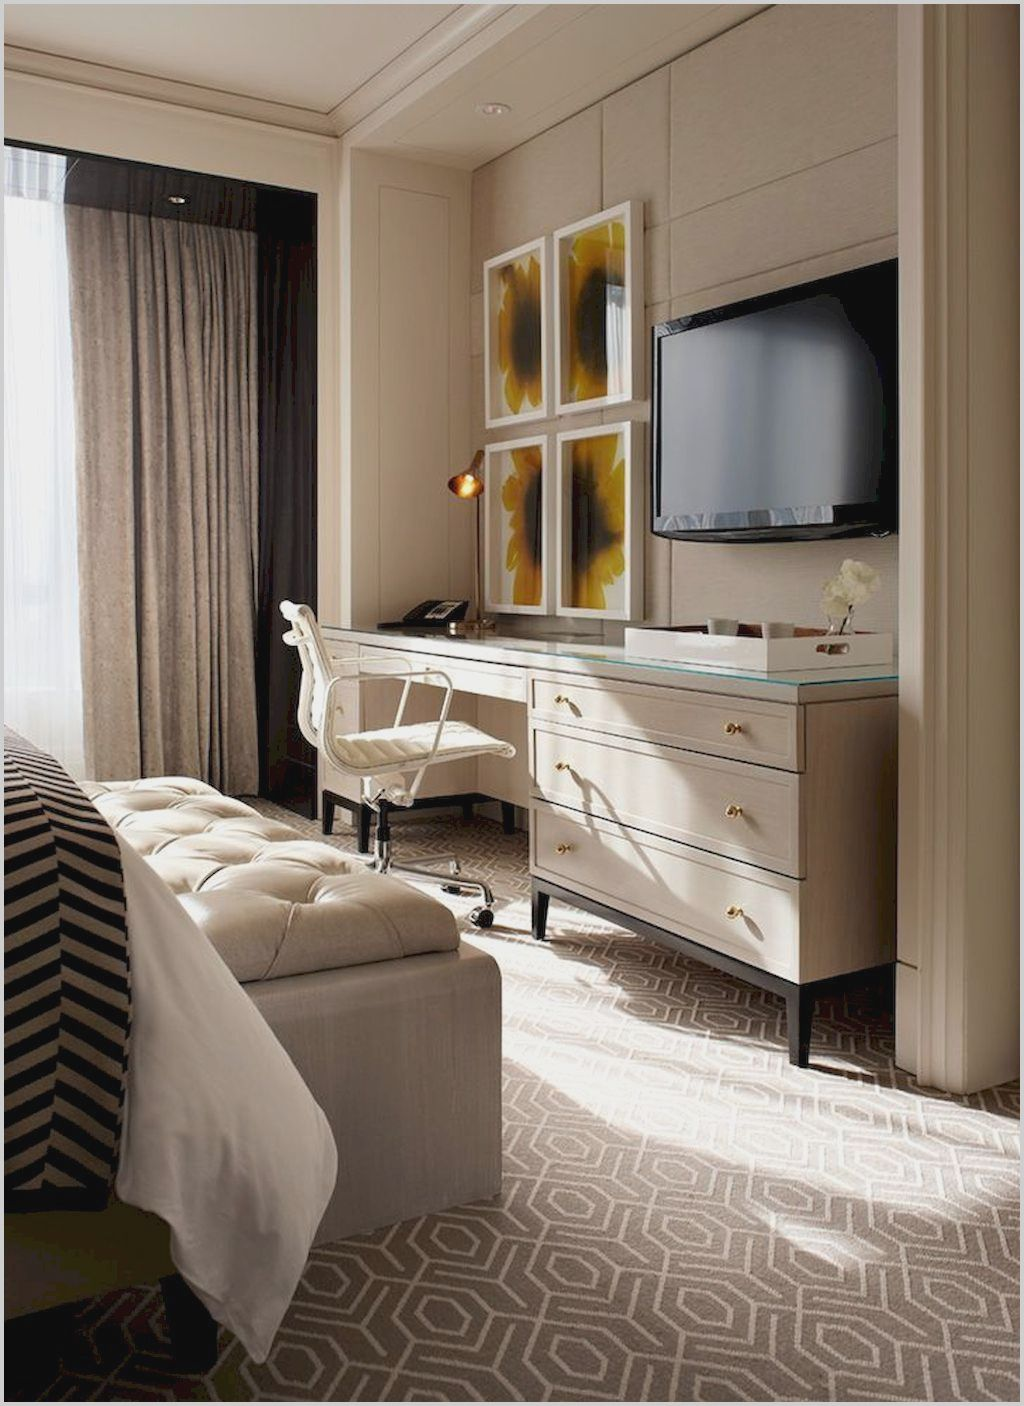 Tv In Small Bedroom : small, bedroom, Television, Small, Bedroom, Master, Bedroom,, Bedrooms, Decor